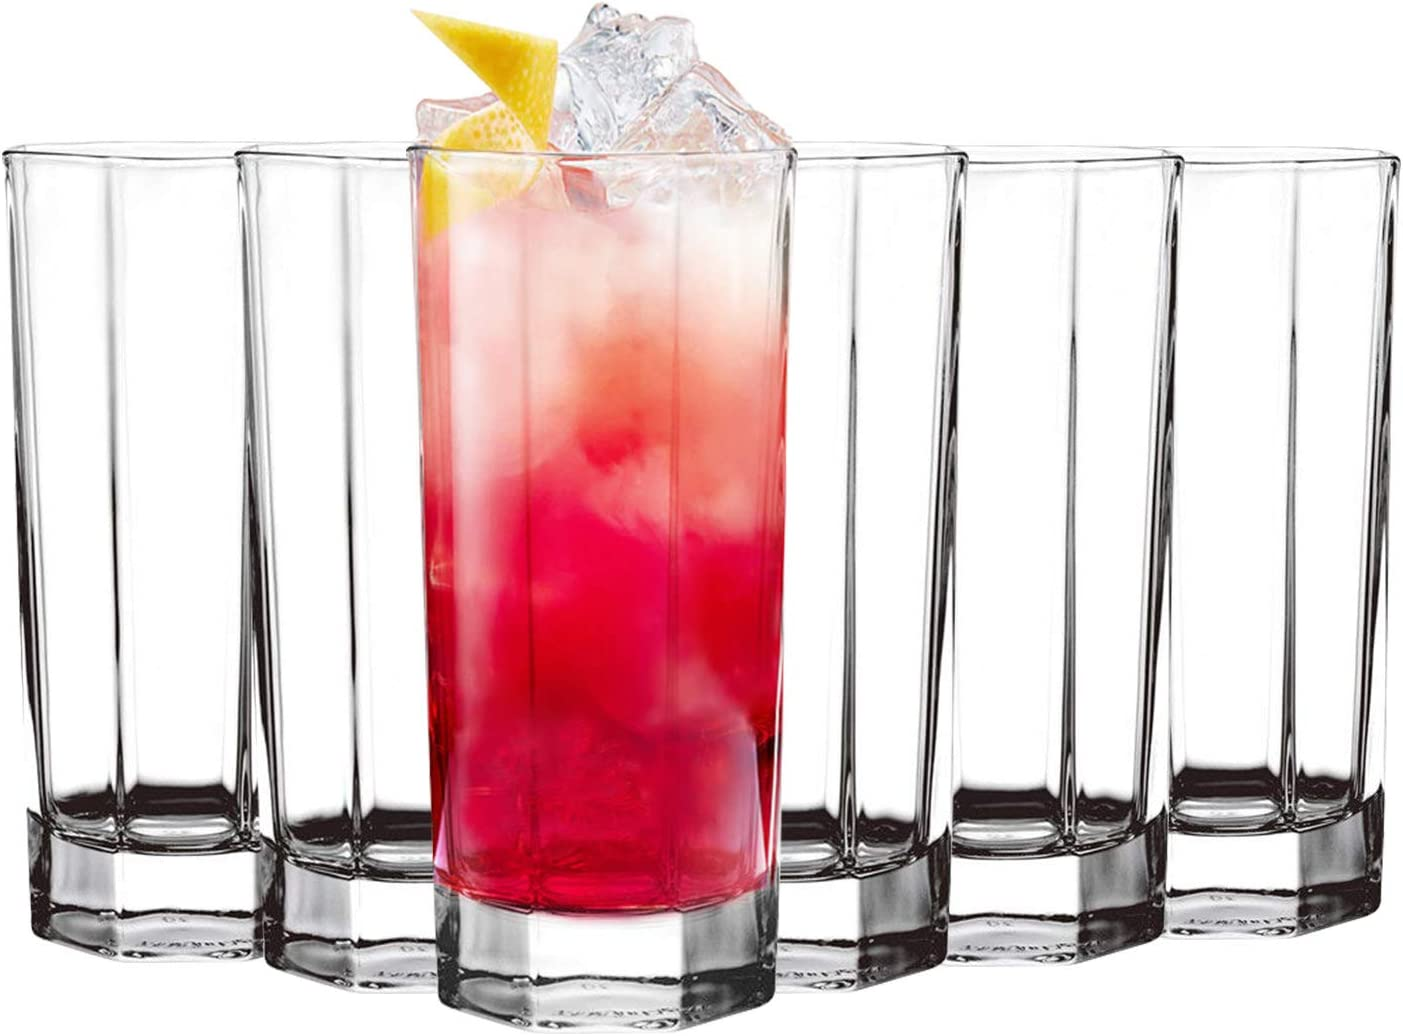 Tebery 6 Pack Clear Highball Glasses Drink Glasses 11 Ounce Unique Octagonal Glass Cup Tumbler Beverage Set